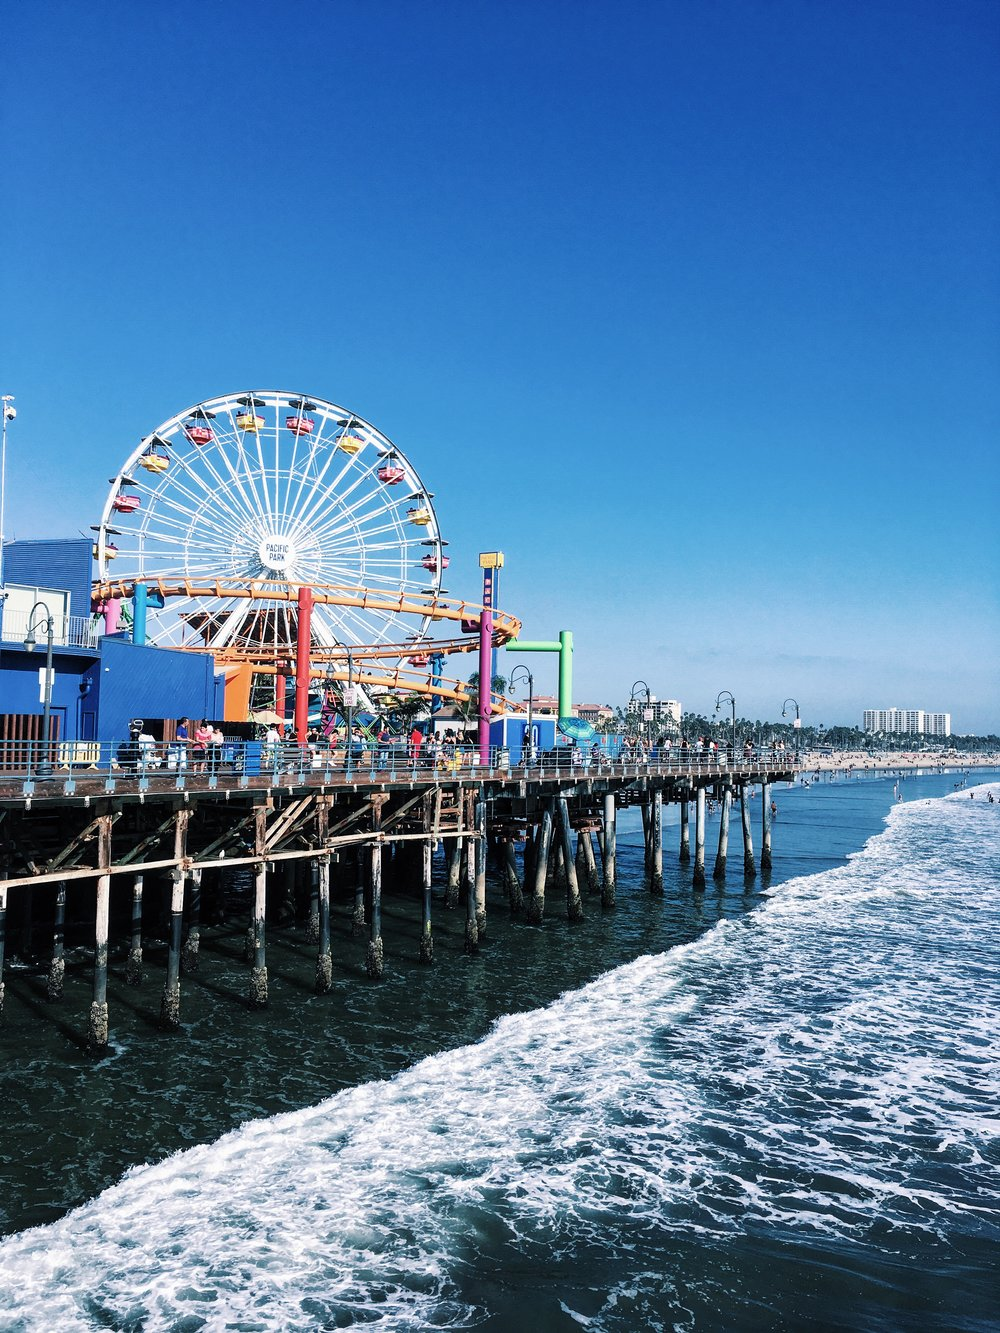 The Santa Monica Pier is one of the biggest and busiest piers I've personally ever visited but also one of the funnest. On the pier you can ride on the ferris wheel at the amusement park, Pacific Park. You can also go to the Santa Monica Aquarium and the historic Loff Hippodrome Carousel.    350 Santa Monica Pier,   Santa Monica, 90401